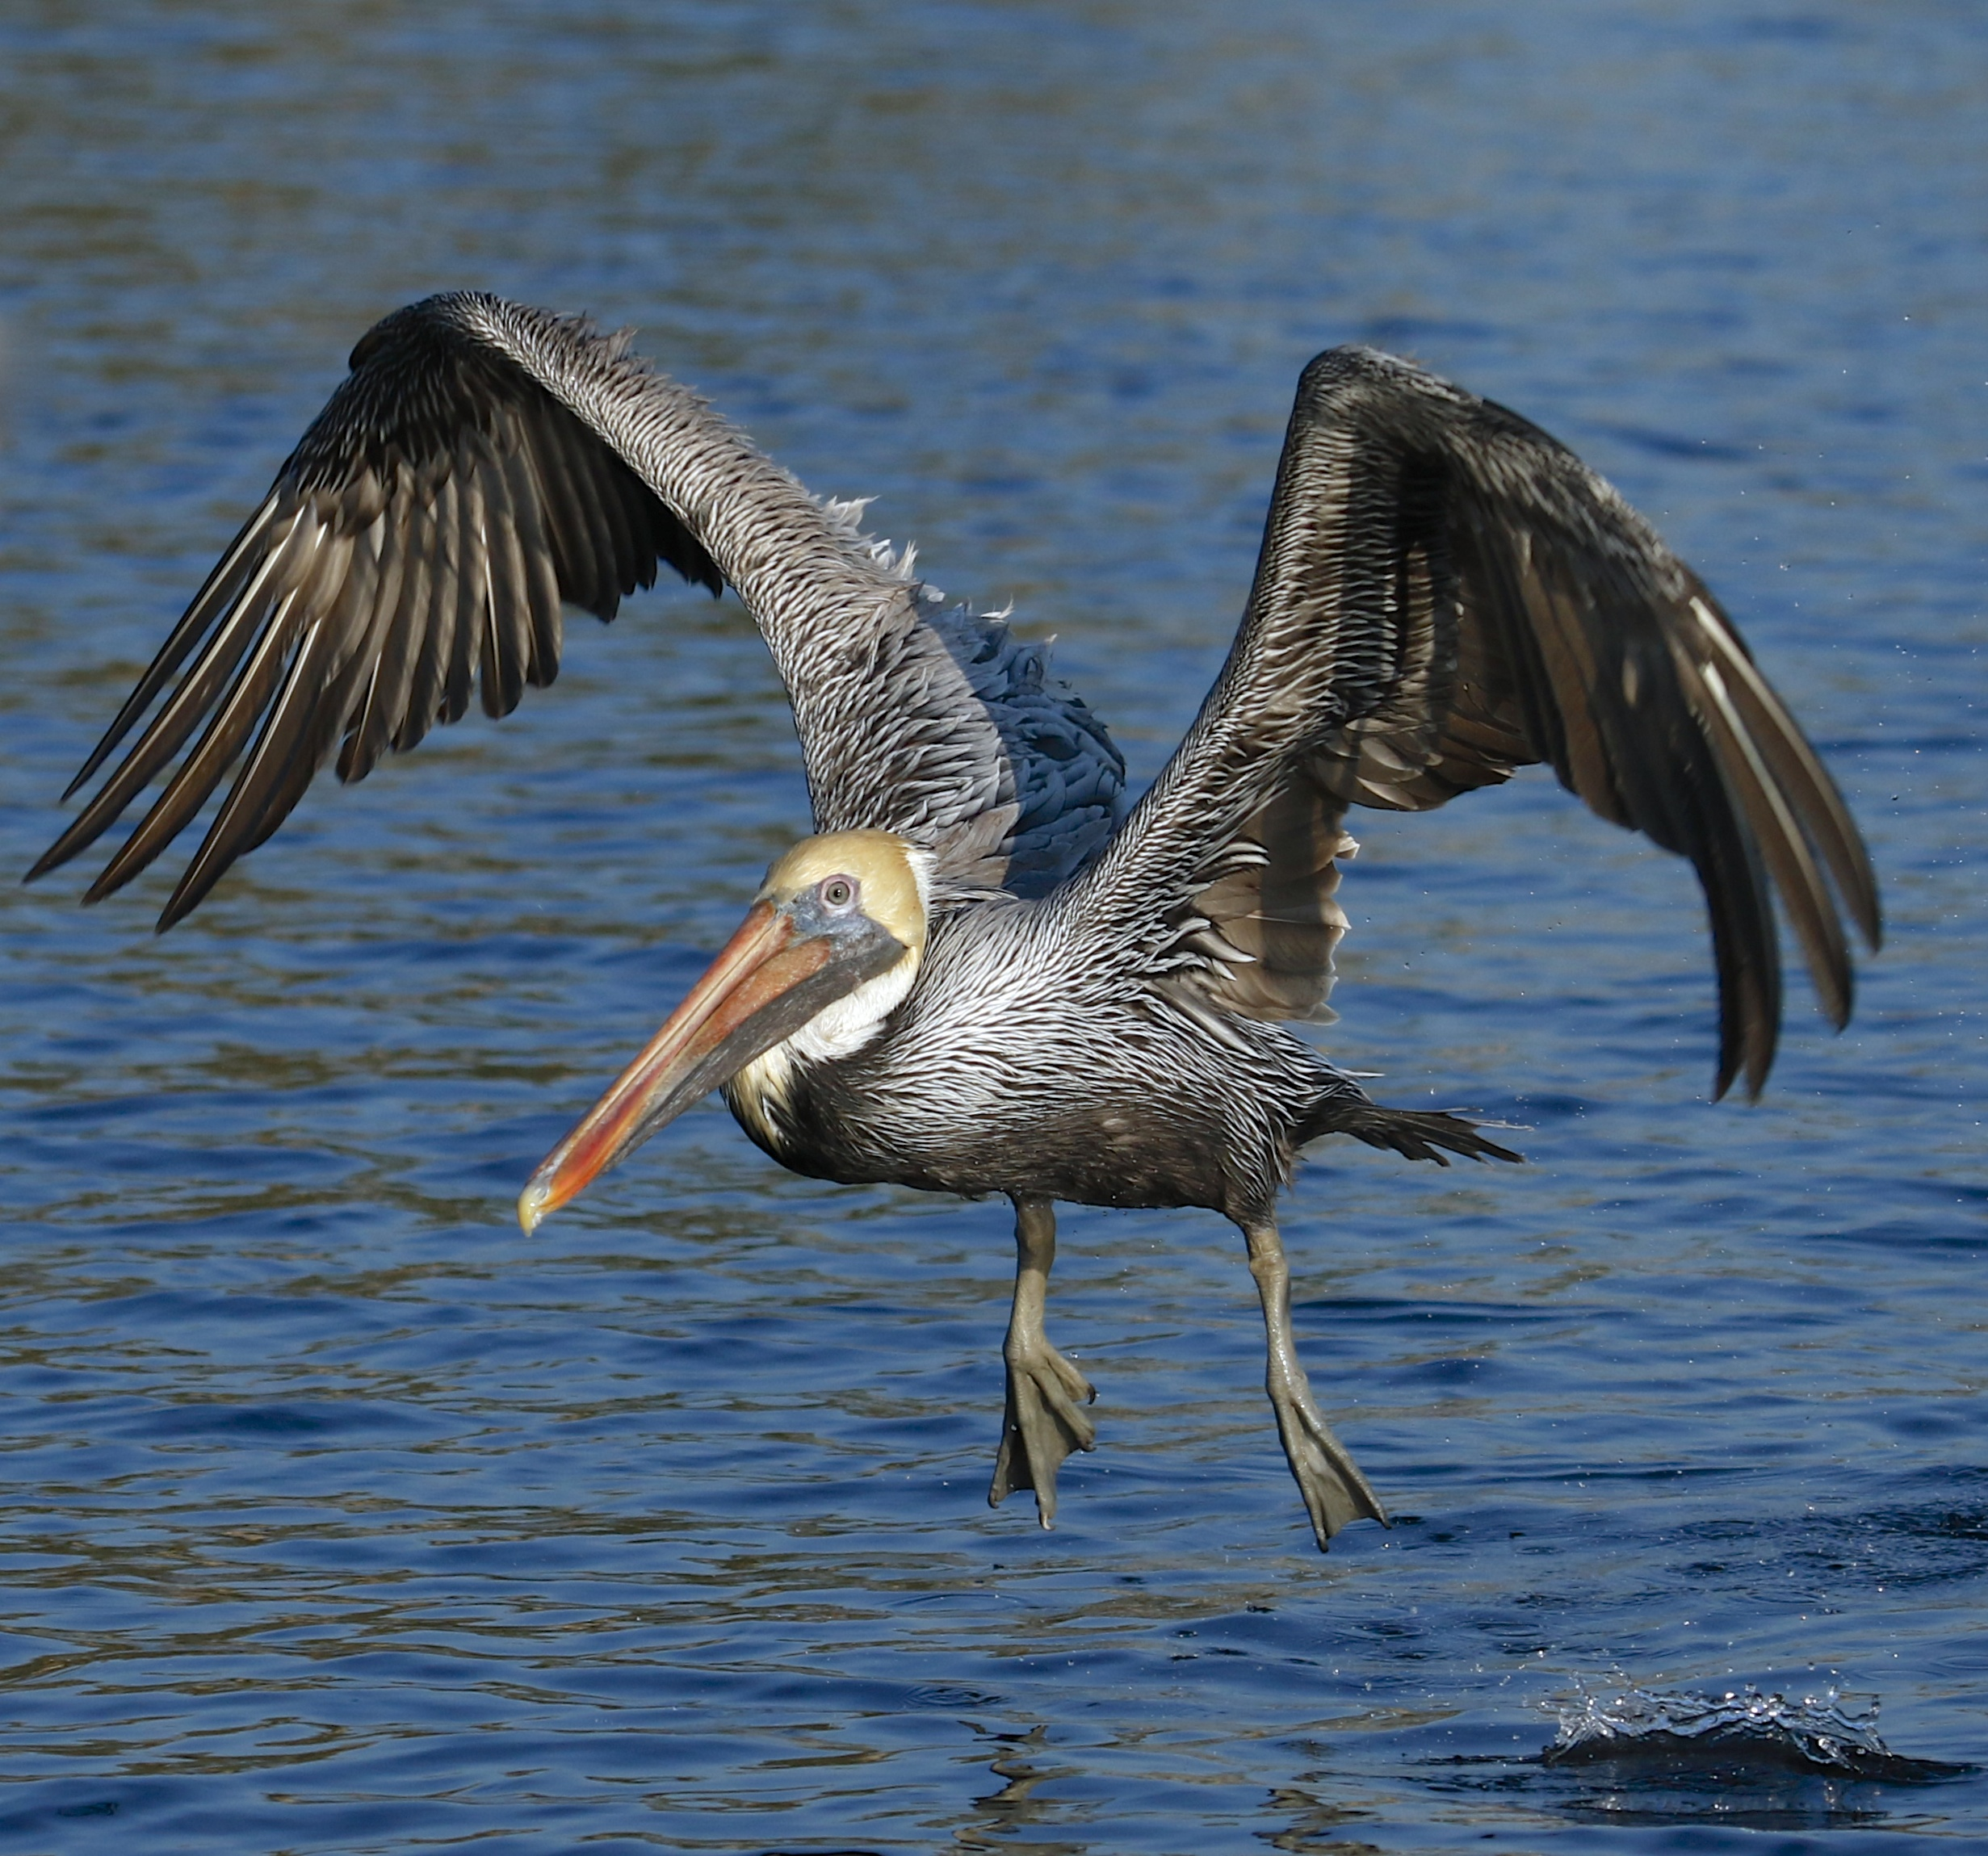 Come on gang, it is time to go to work on the river! The Brown Pelican raises its mighty wings and lifts off!